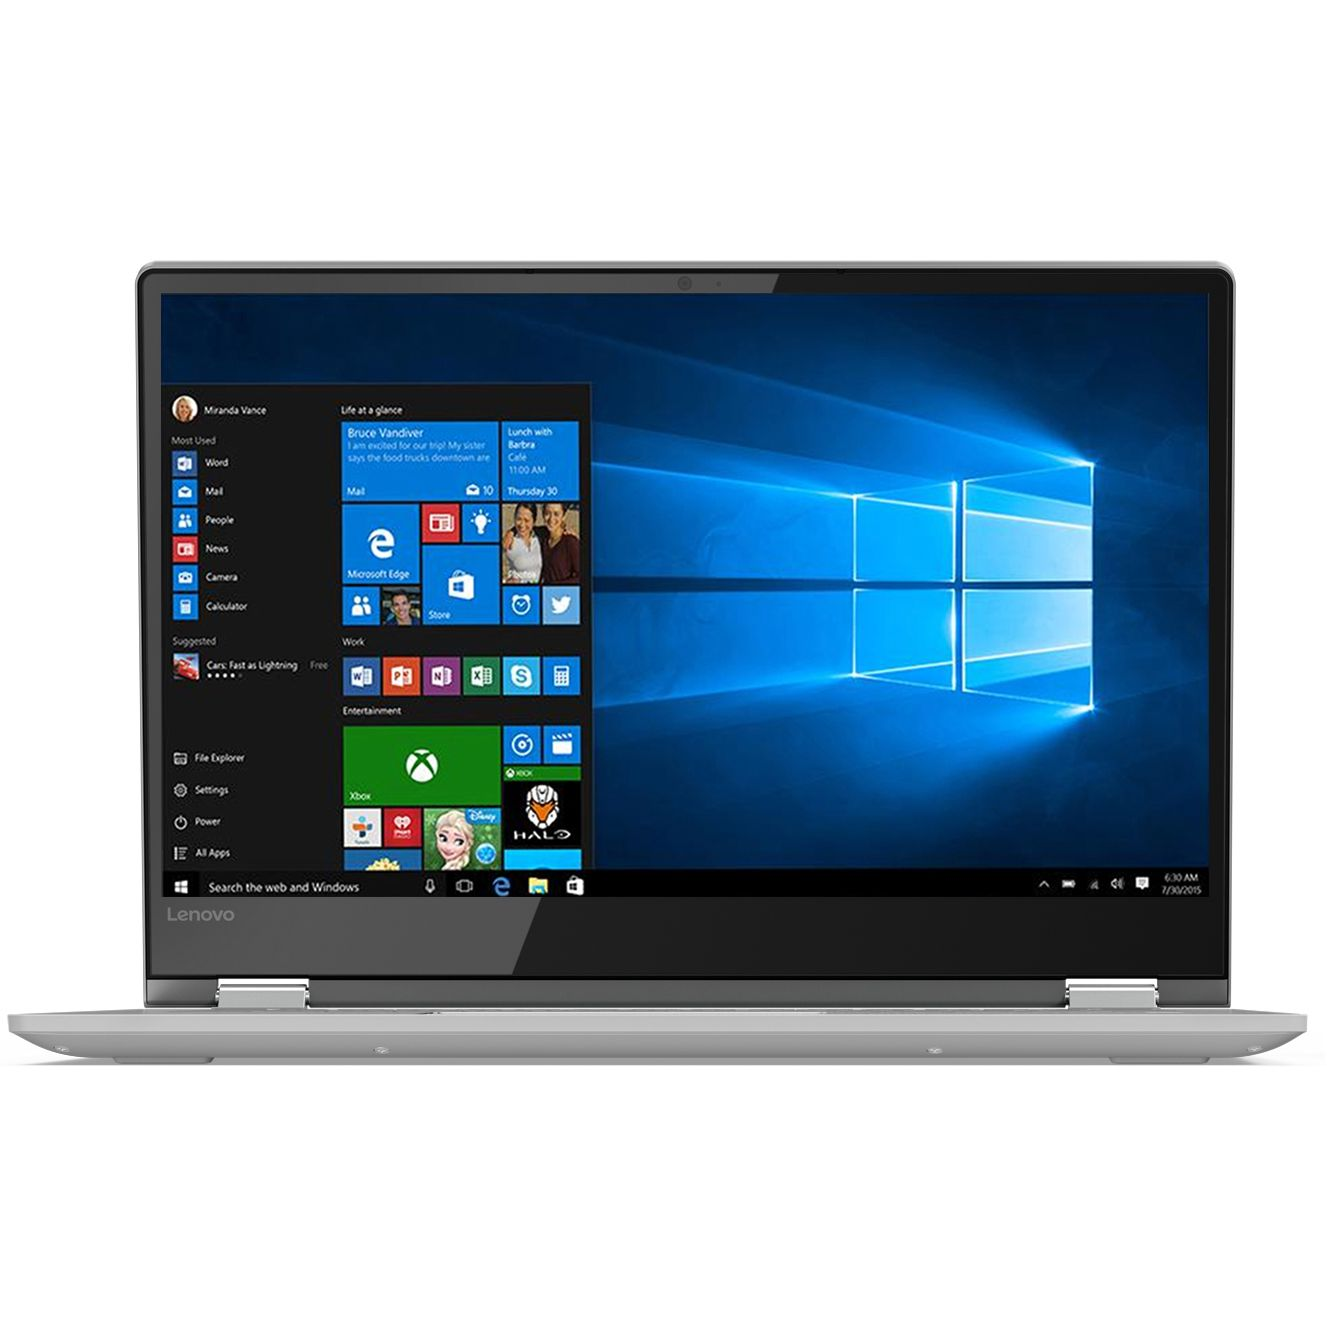 Ultrabook Lenovo Yoga 530 14 Full HD Touch Intel Core i5-8250U RAM 8GB SSD 256GB Windows 10 Home Gri